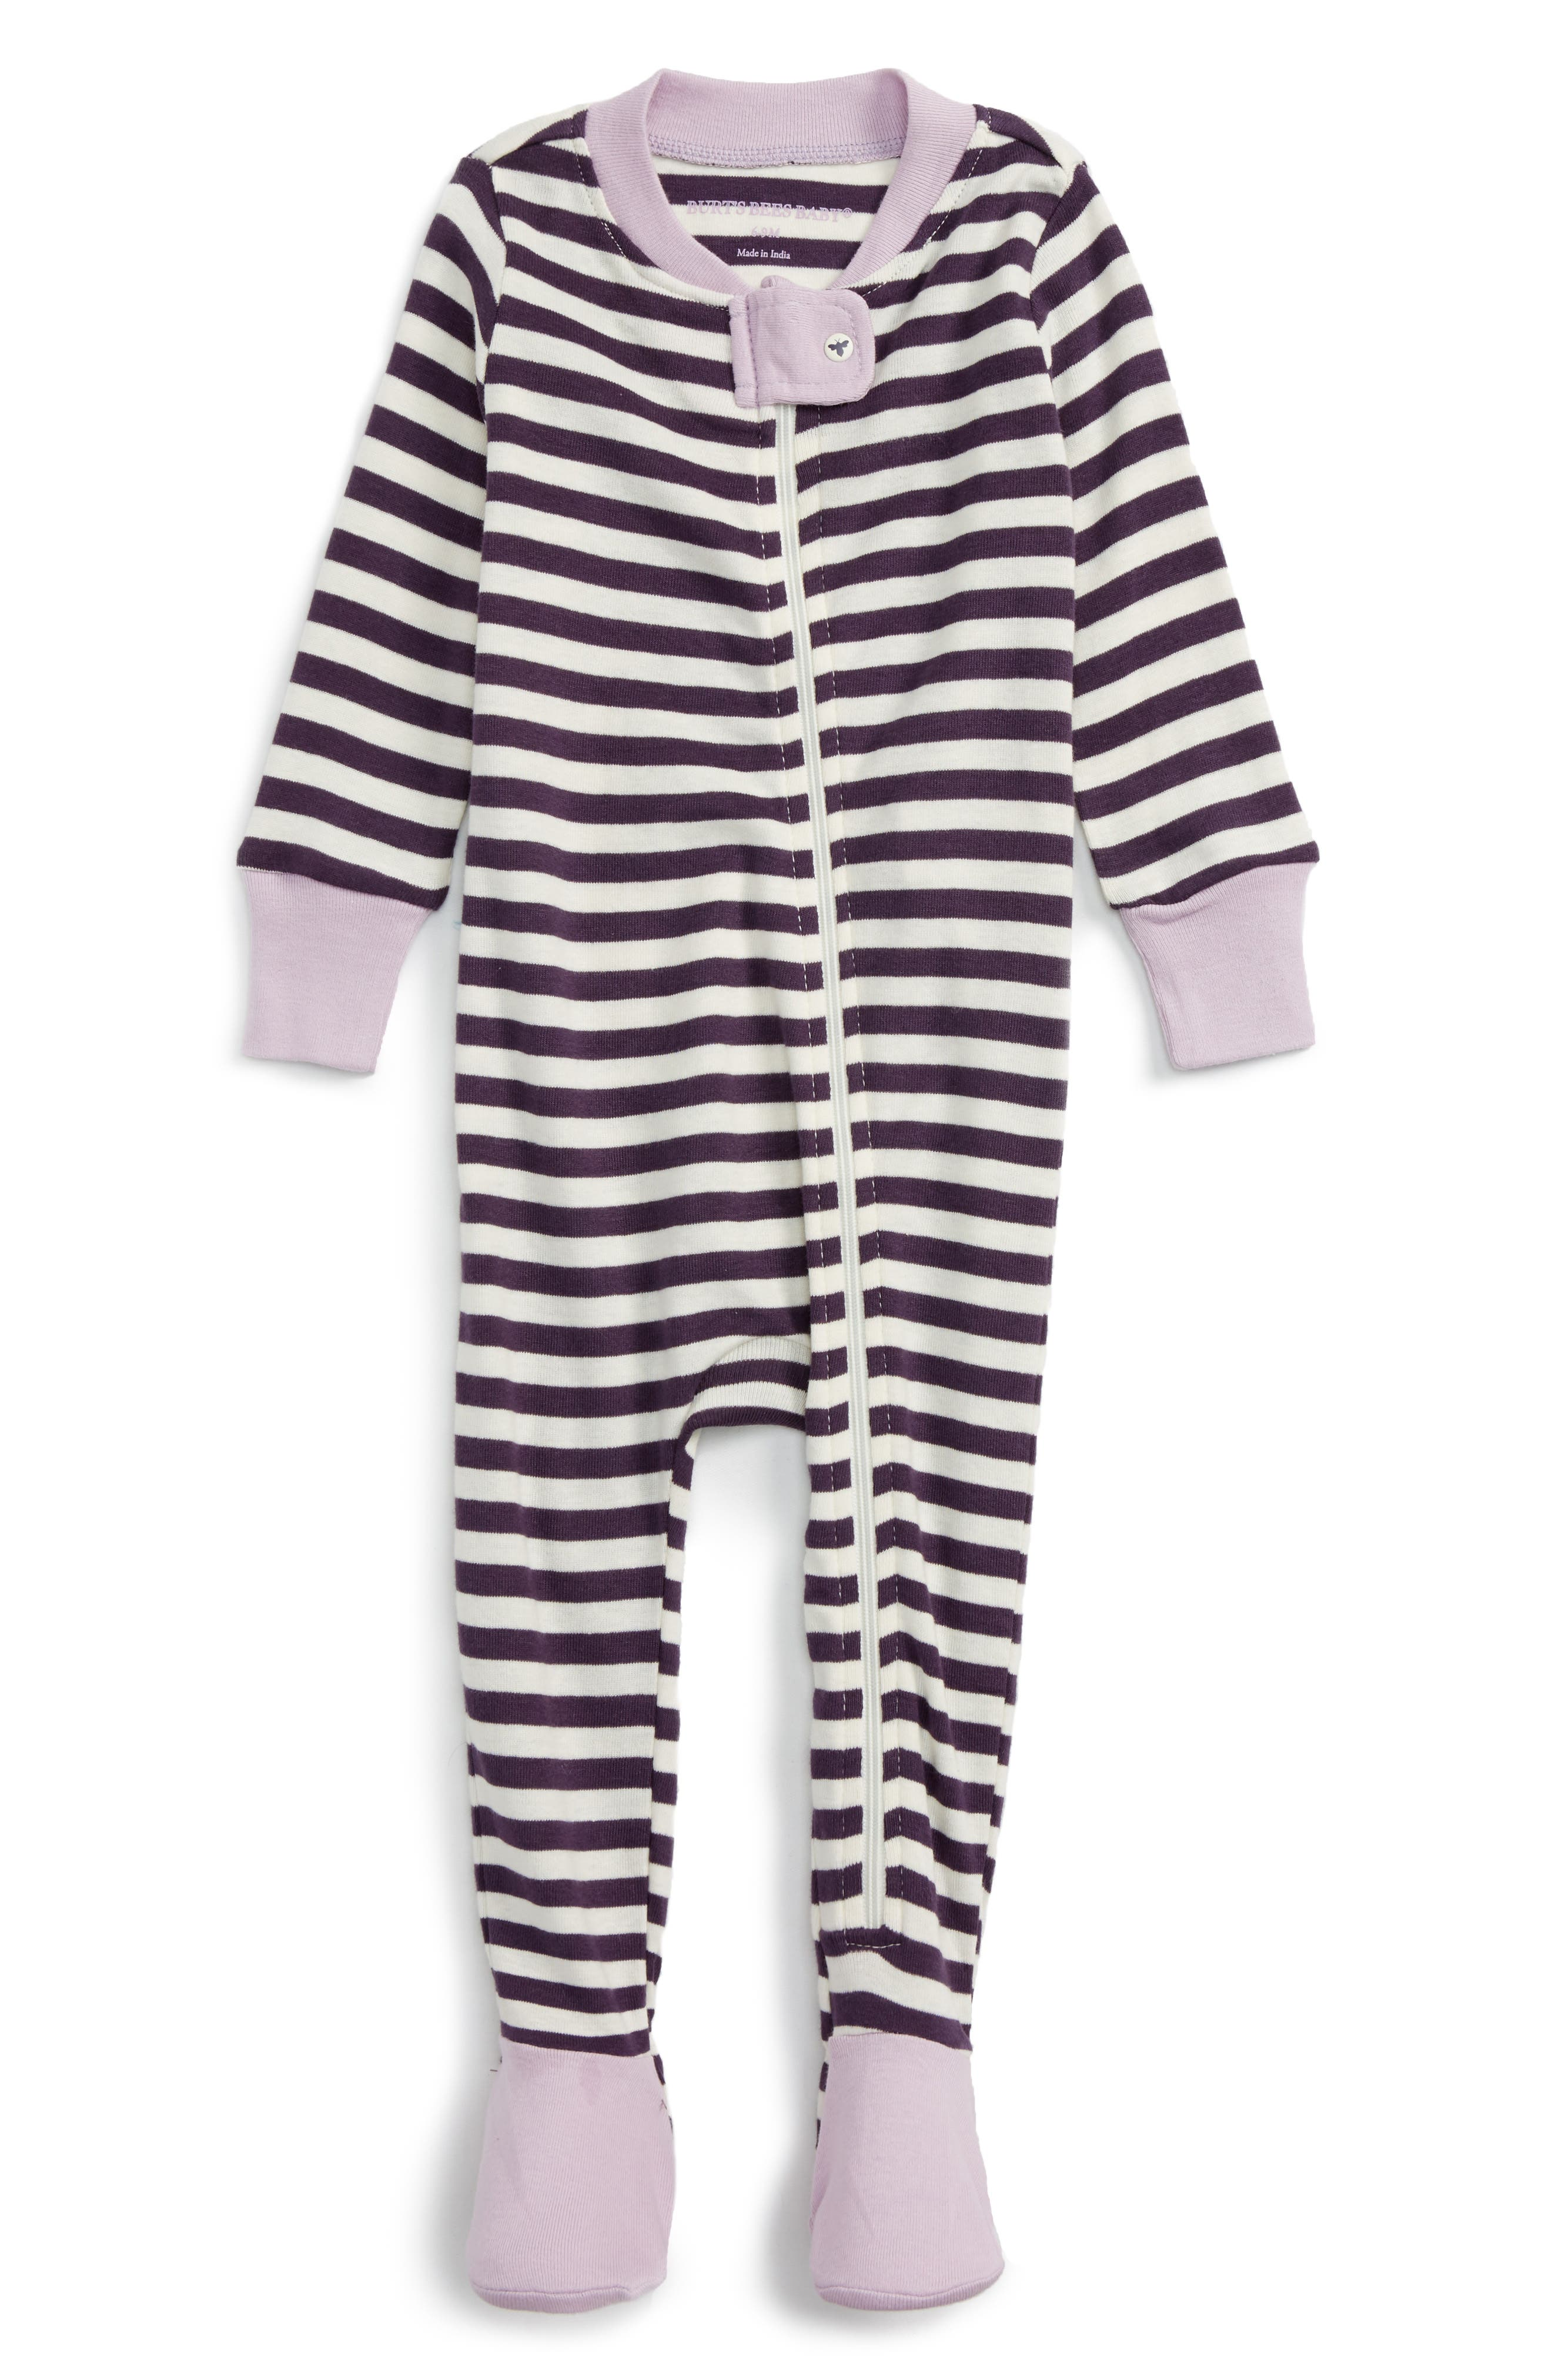 Burt's Bees Baby Organic Cotton Fitted One-Piece Pajamas (Baby Girls)